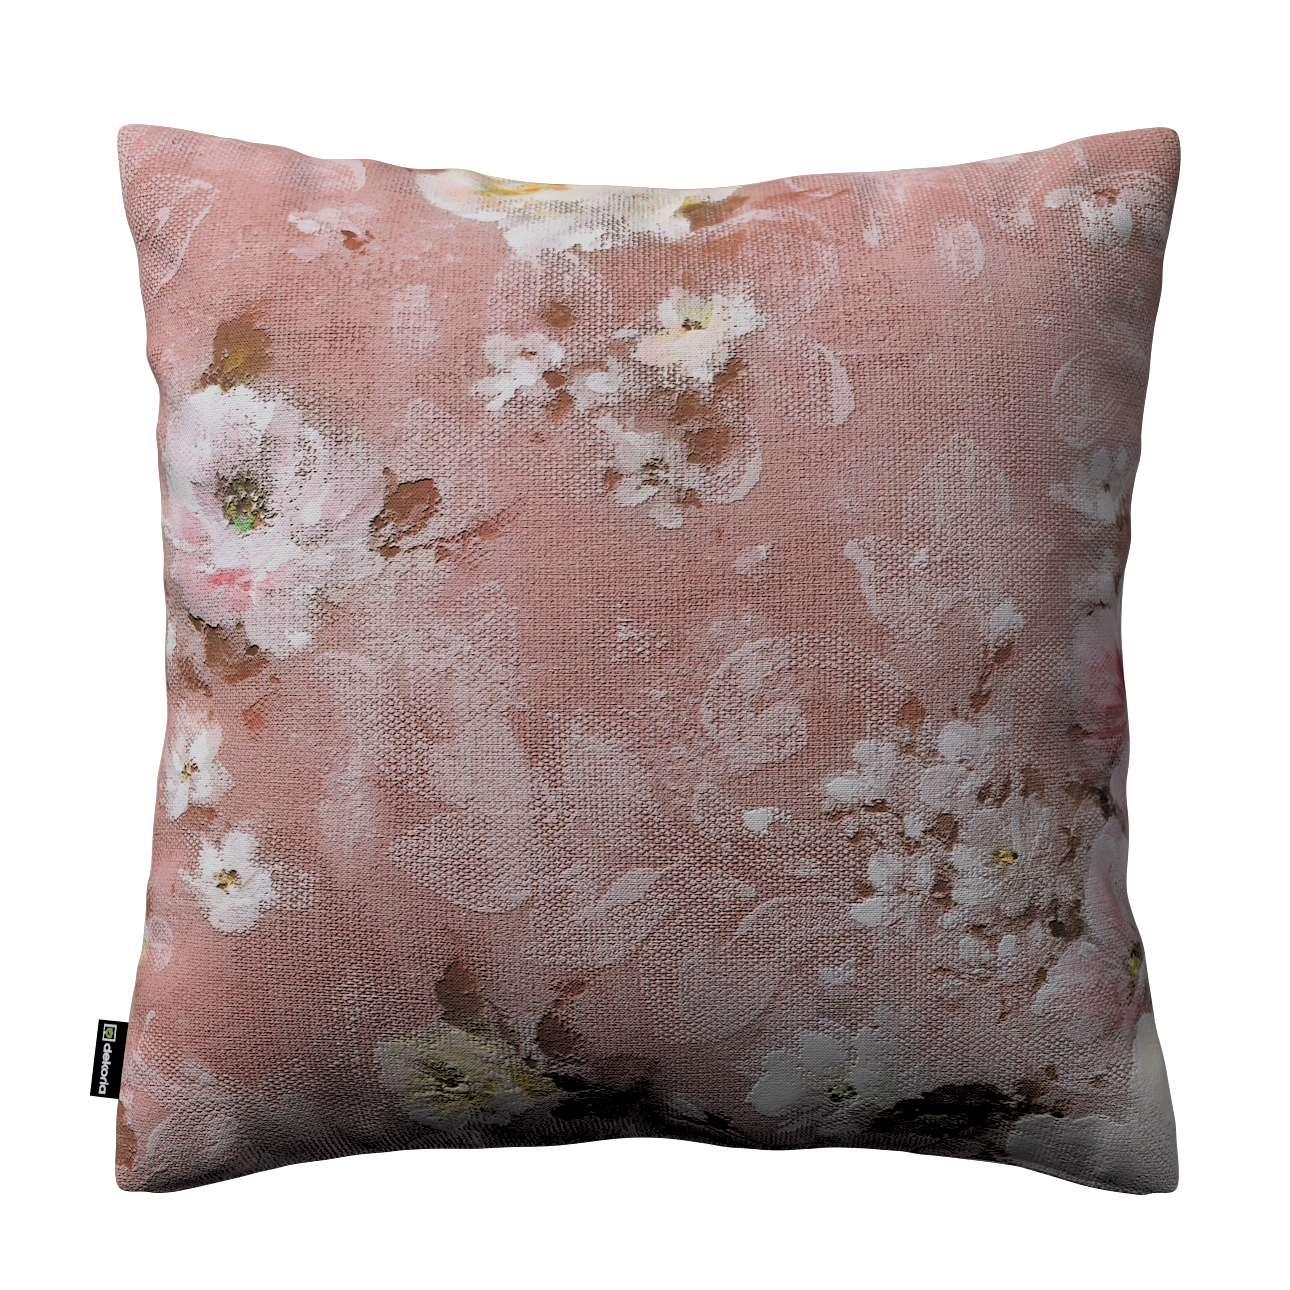 Kinga cushion cover in collection Monet, fabric: 137-83